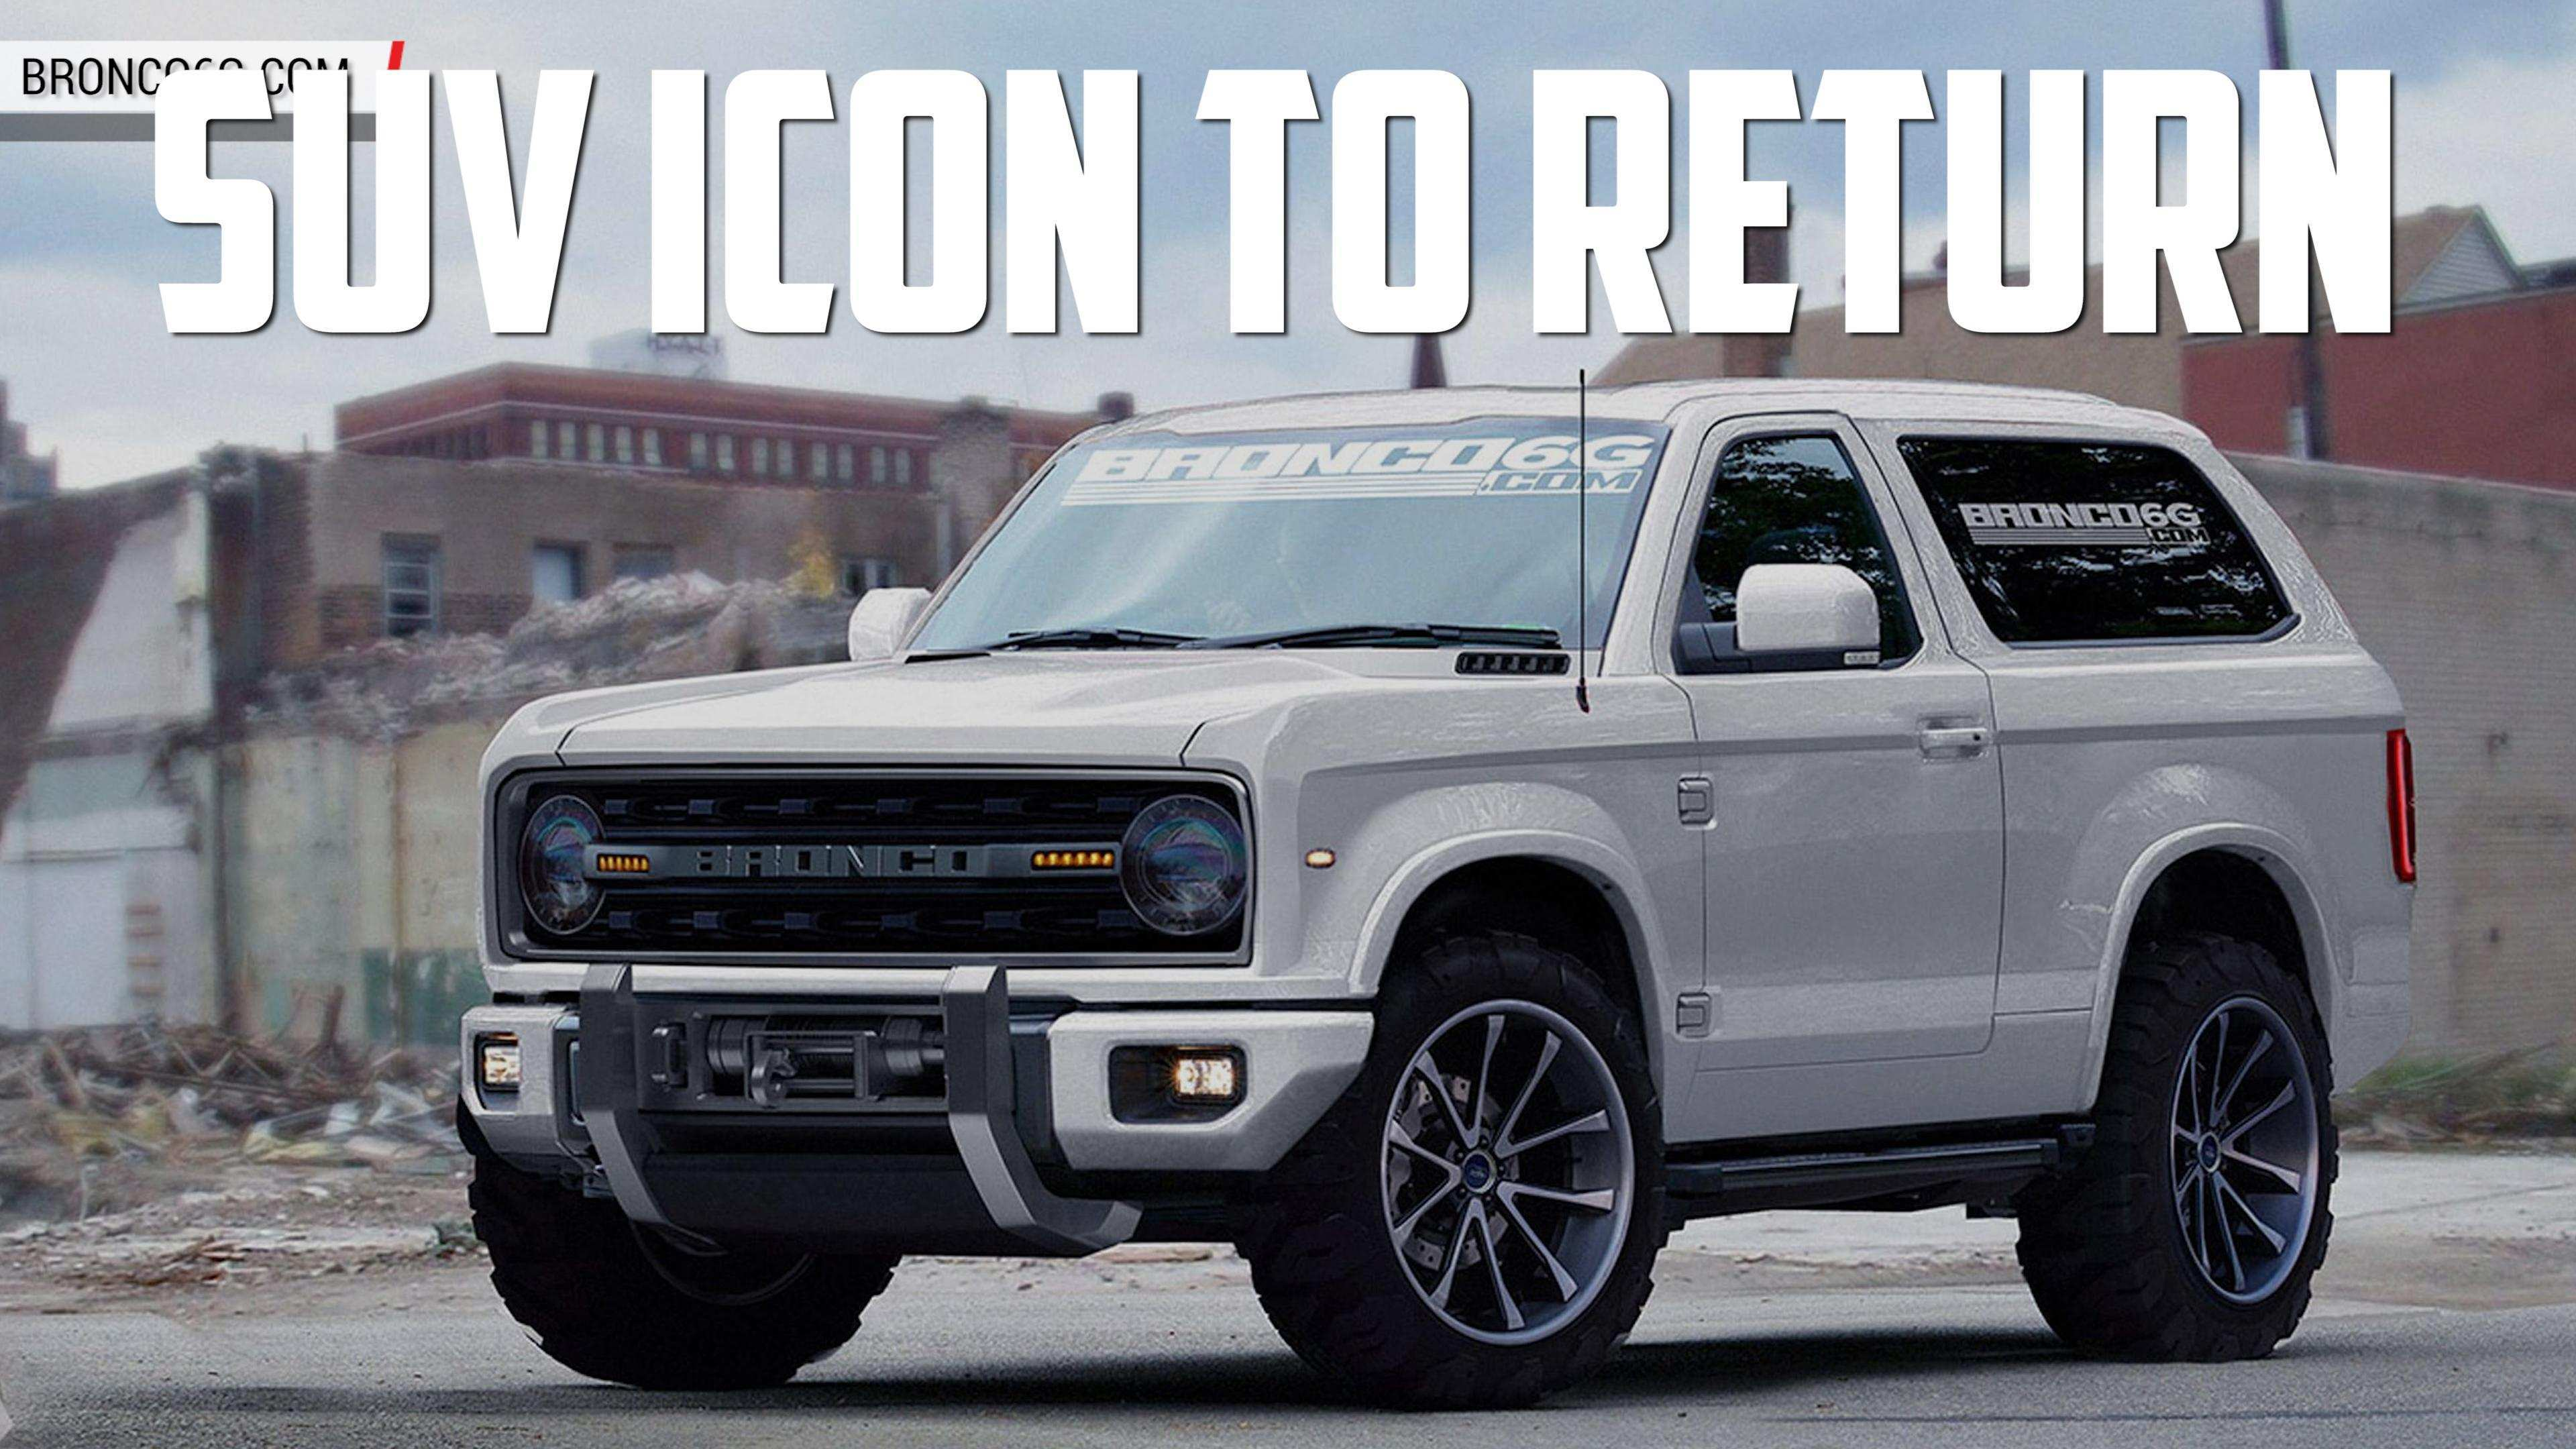 66 New Ford Bronco 2020 Price Overview